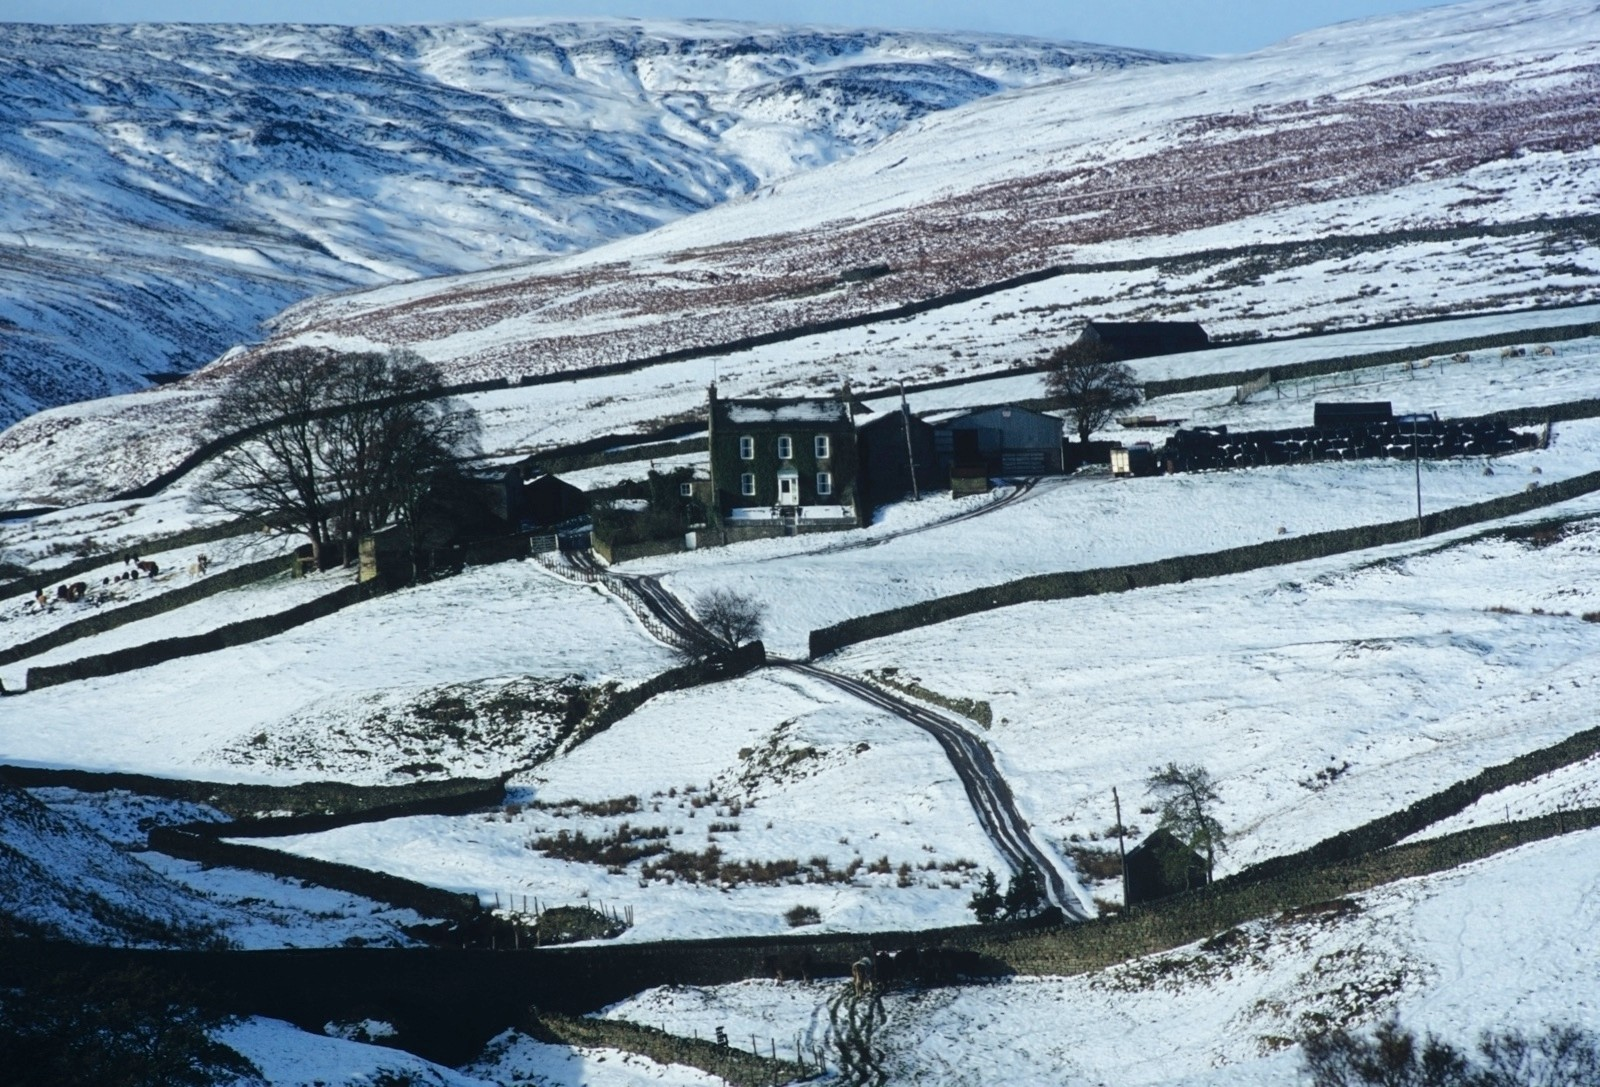 a remote farmhouse in the middle of snow covered fields in the winter - yorkshire dales national park, arkengarthdale, uk